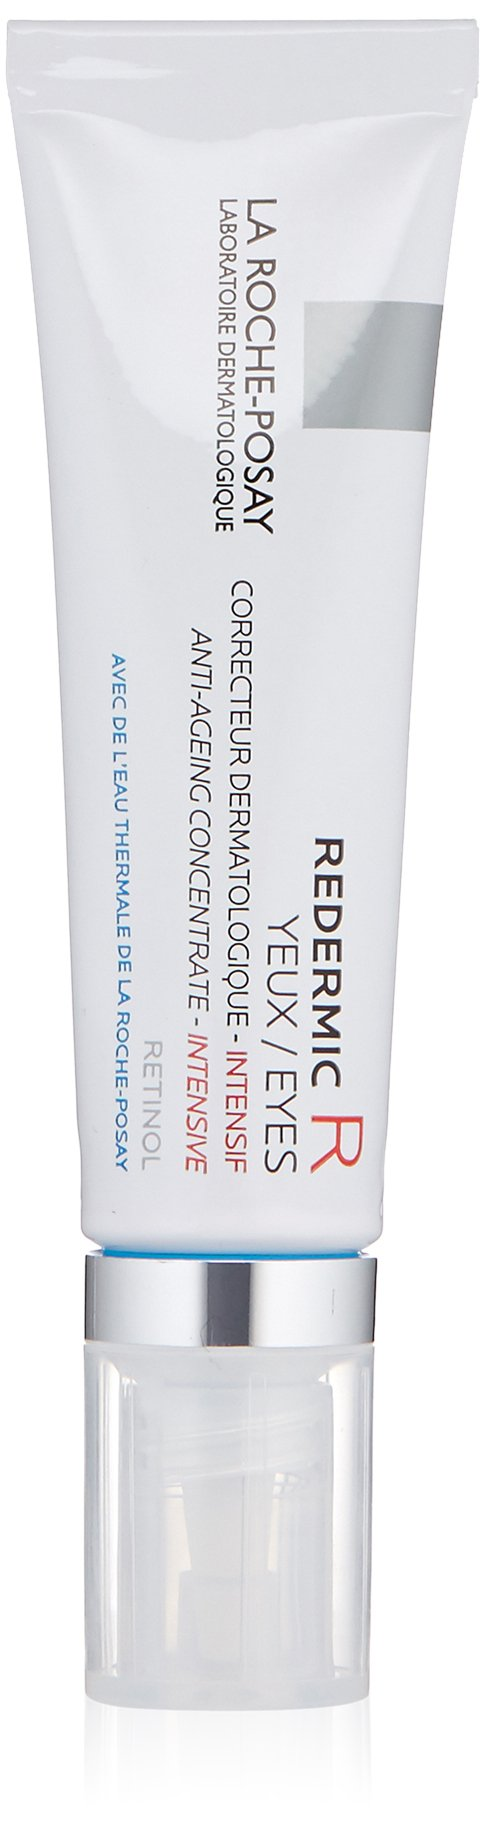 La Roche-Posay Redermic R Eyes Retinol Eye Cream, 0.5 Fl. Oz.